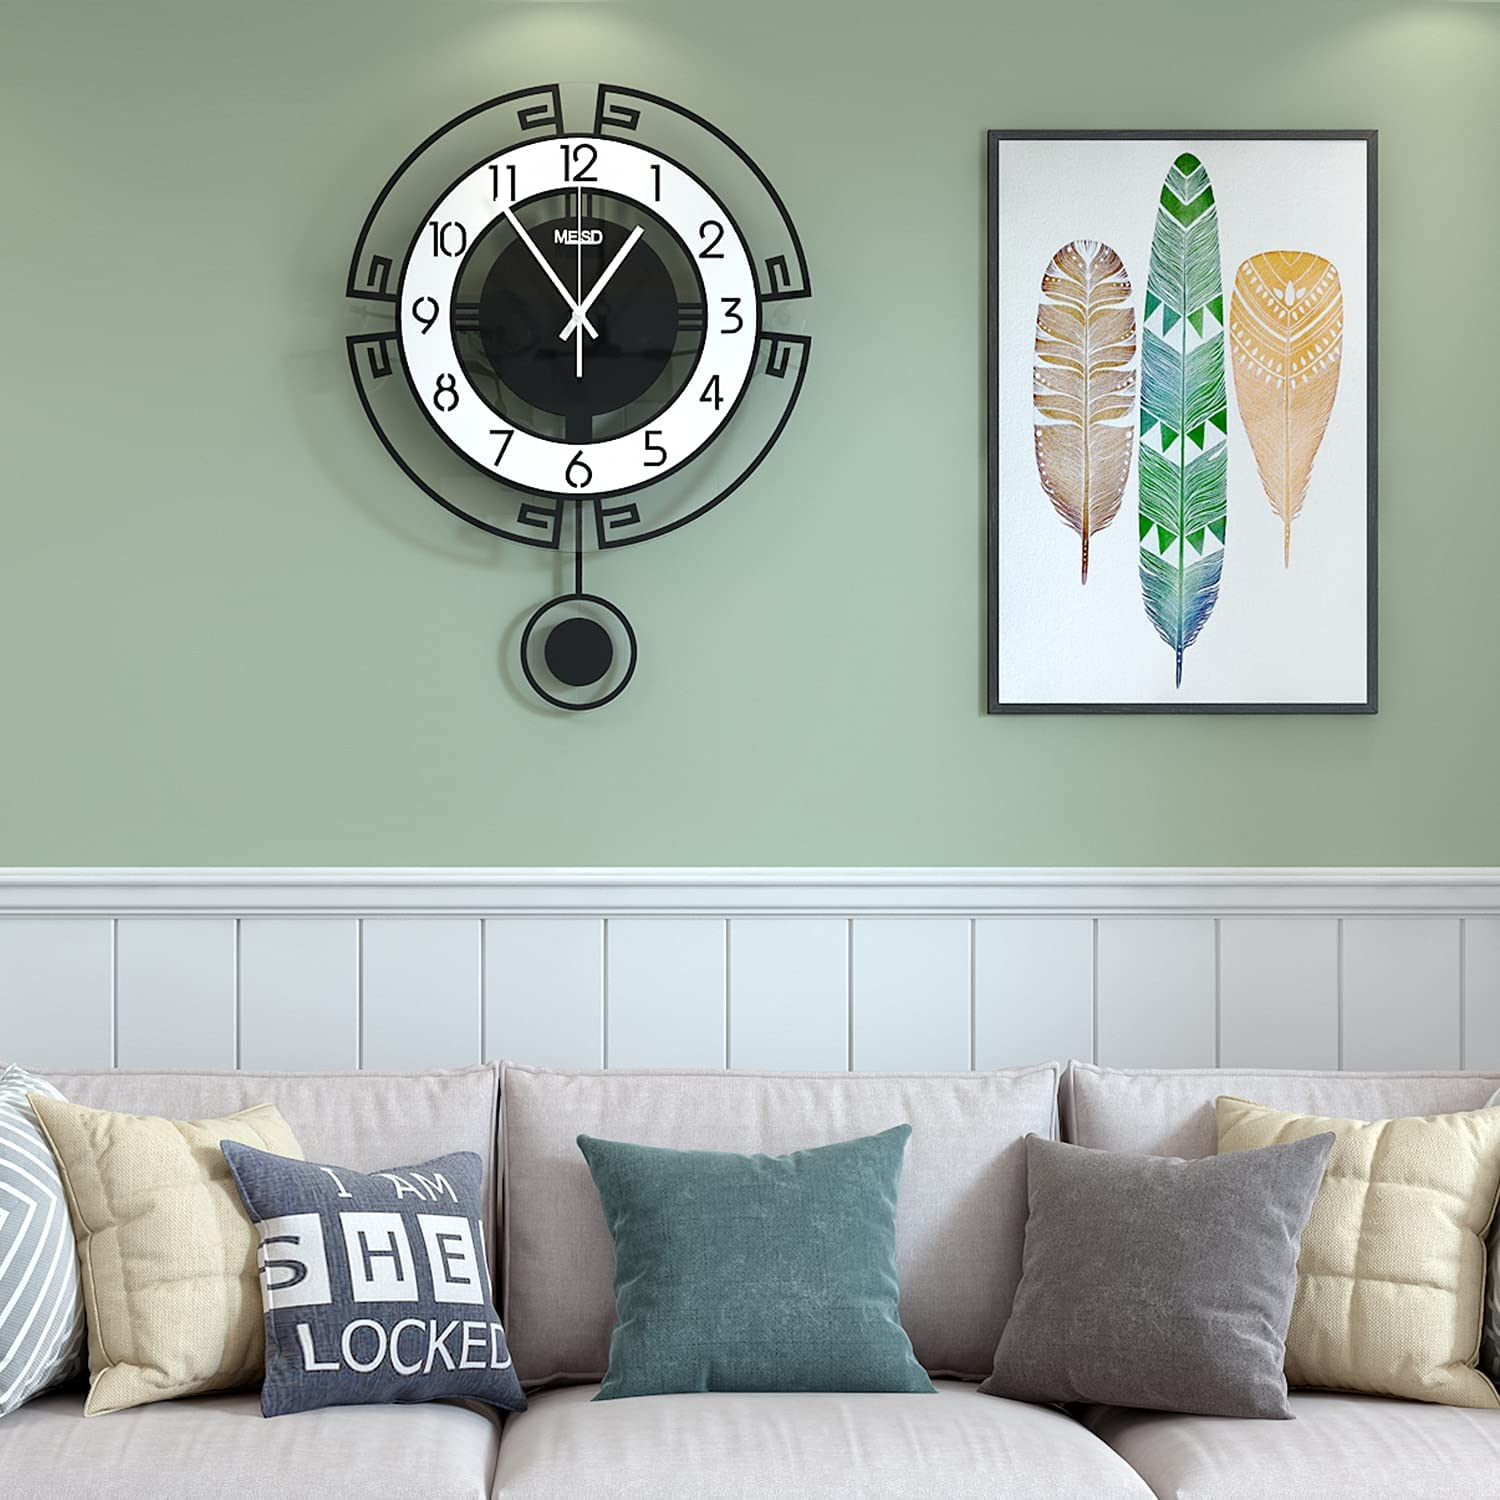 MEISD Modern Wall Clock for Living Room Decor,Decorative Wall Clocks Battery Operated with Pendulum for Kitchen Office Bedroom, 11 Inch Small Wall Clock, Silent Wall Clock Non Ticking, Analog Display